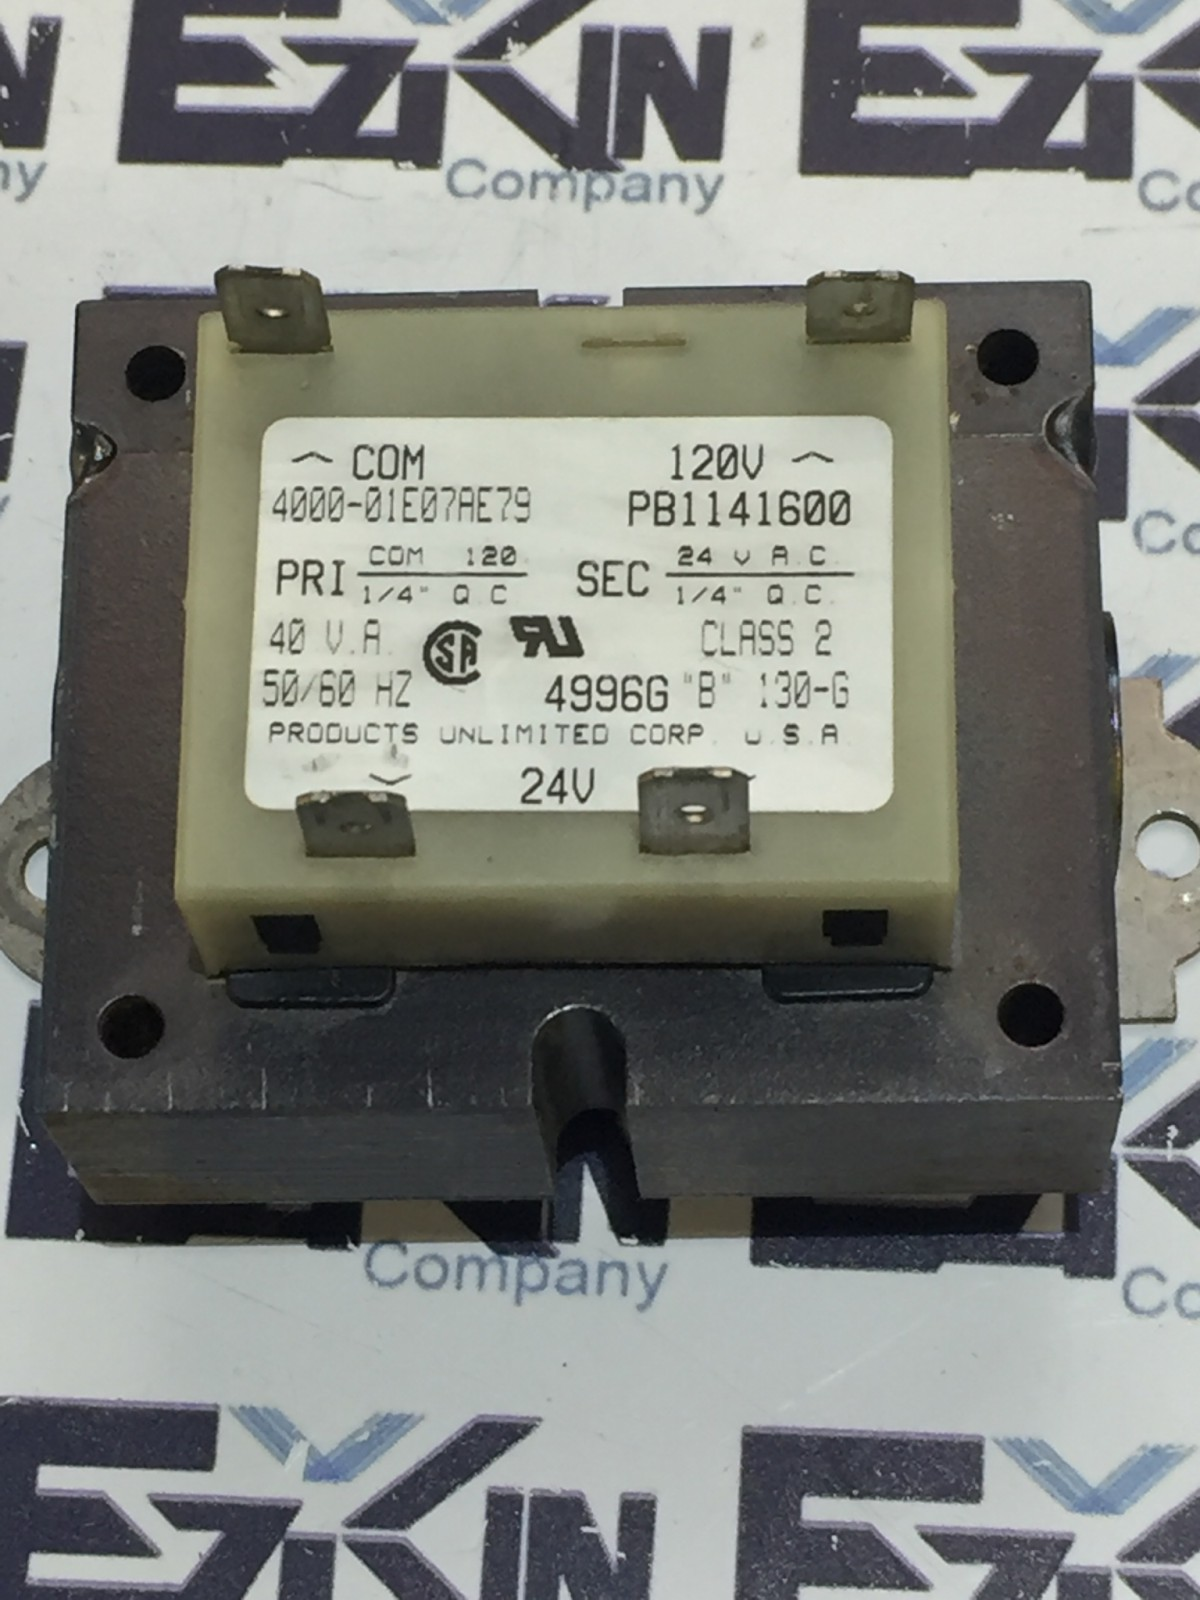 PRODUCTS UNLIMITED 4000-01E07AE79 TRANSFORMER B1141600